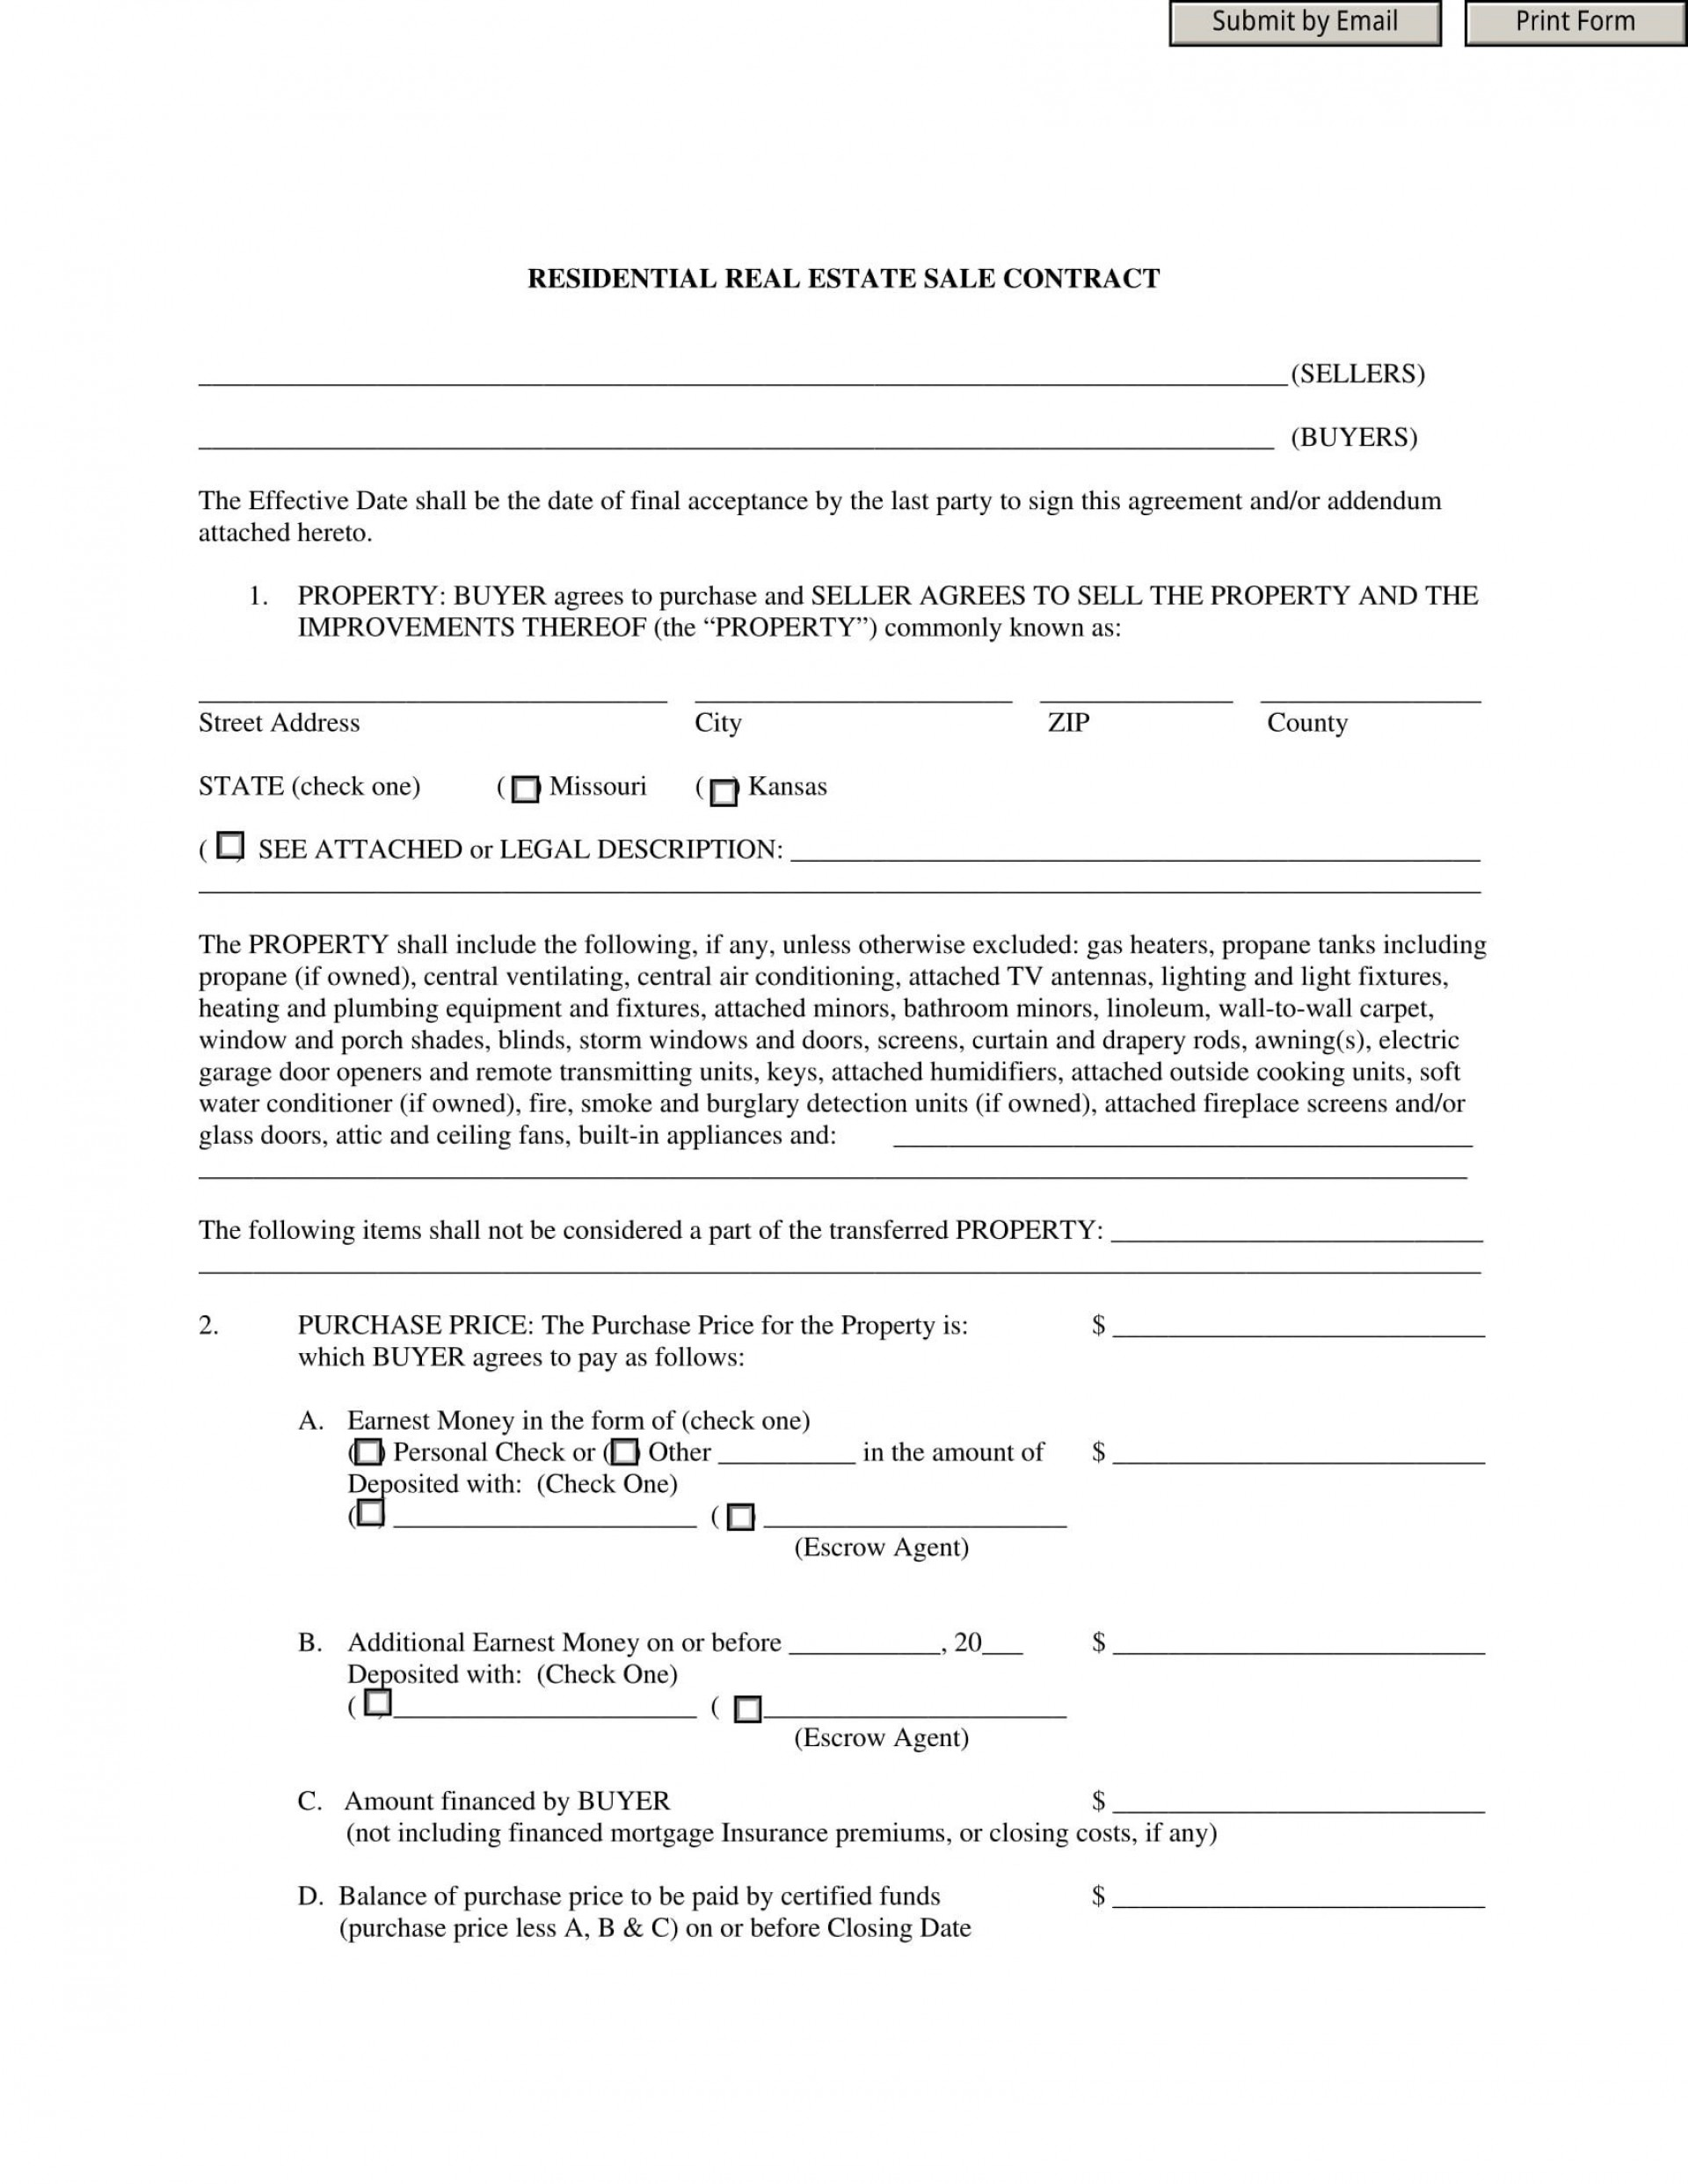 009 Exceptional Residential Purchase Agreement Template Picture  California Form Free1920